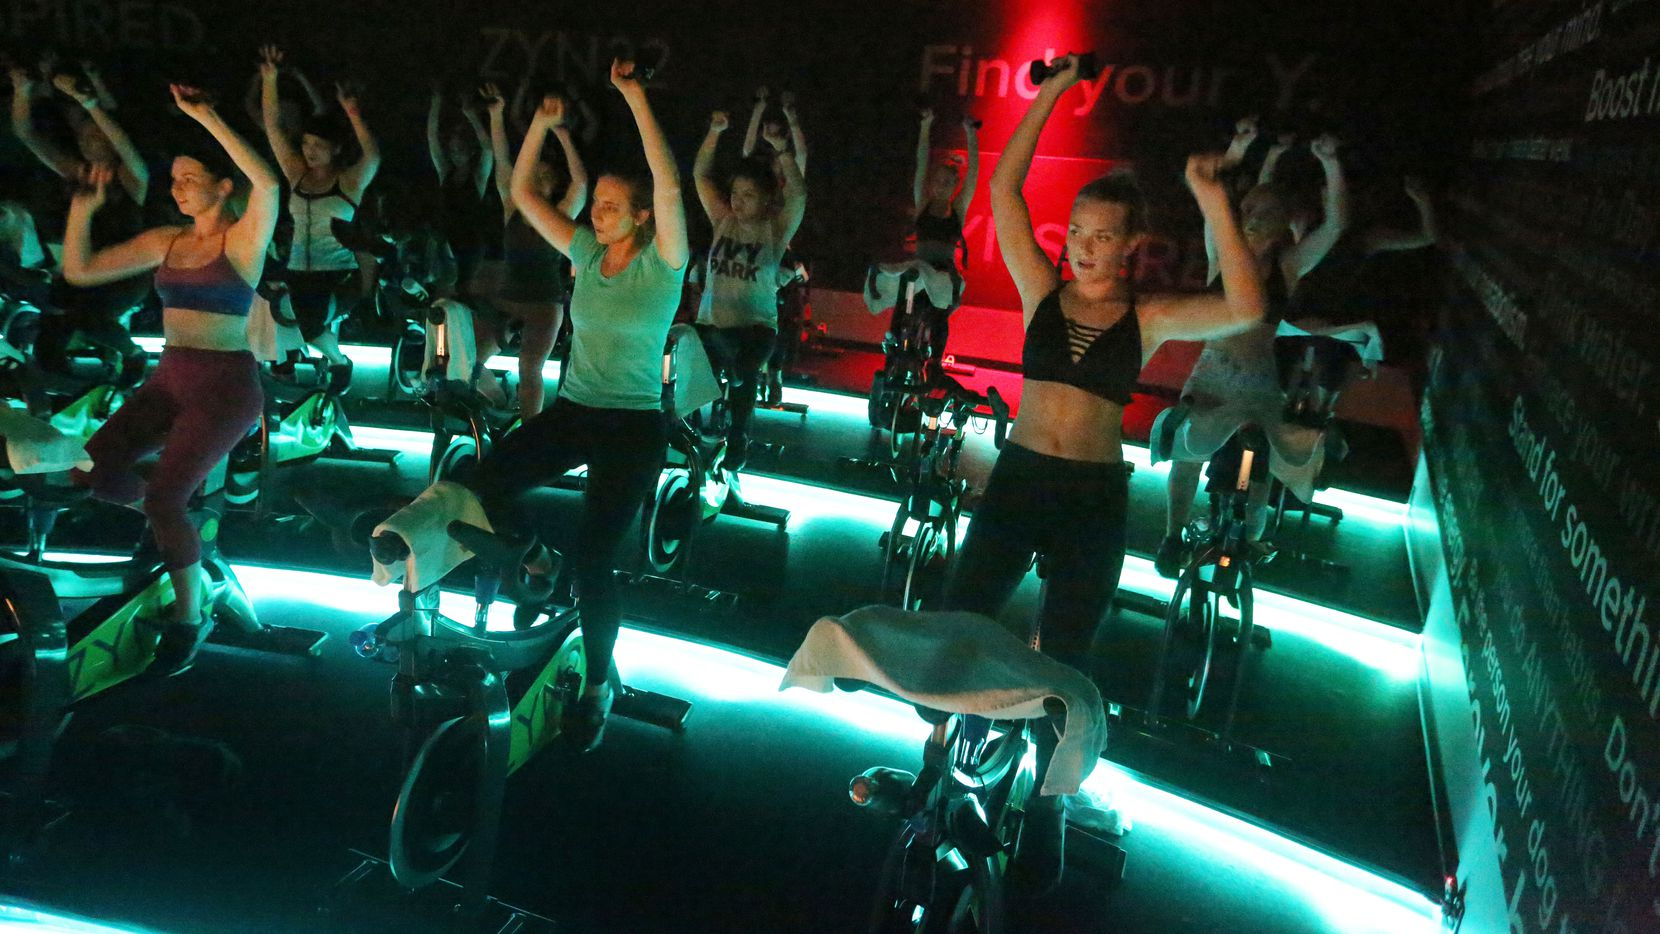 5 totally normal things you're thinking during a SoulCycle